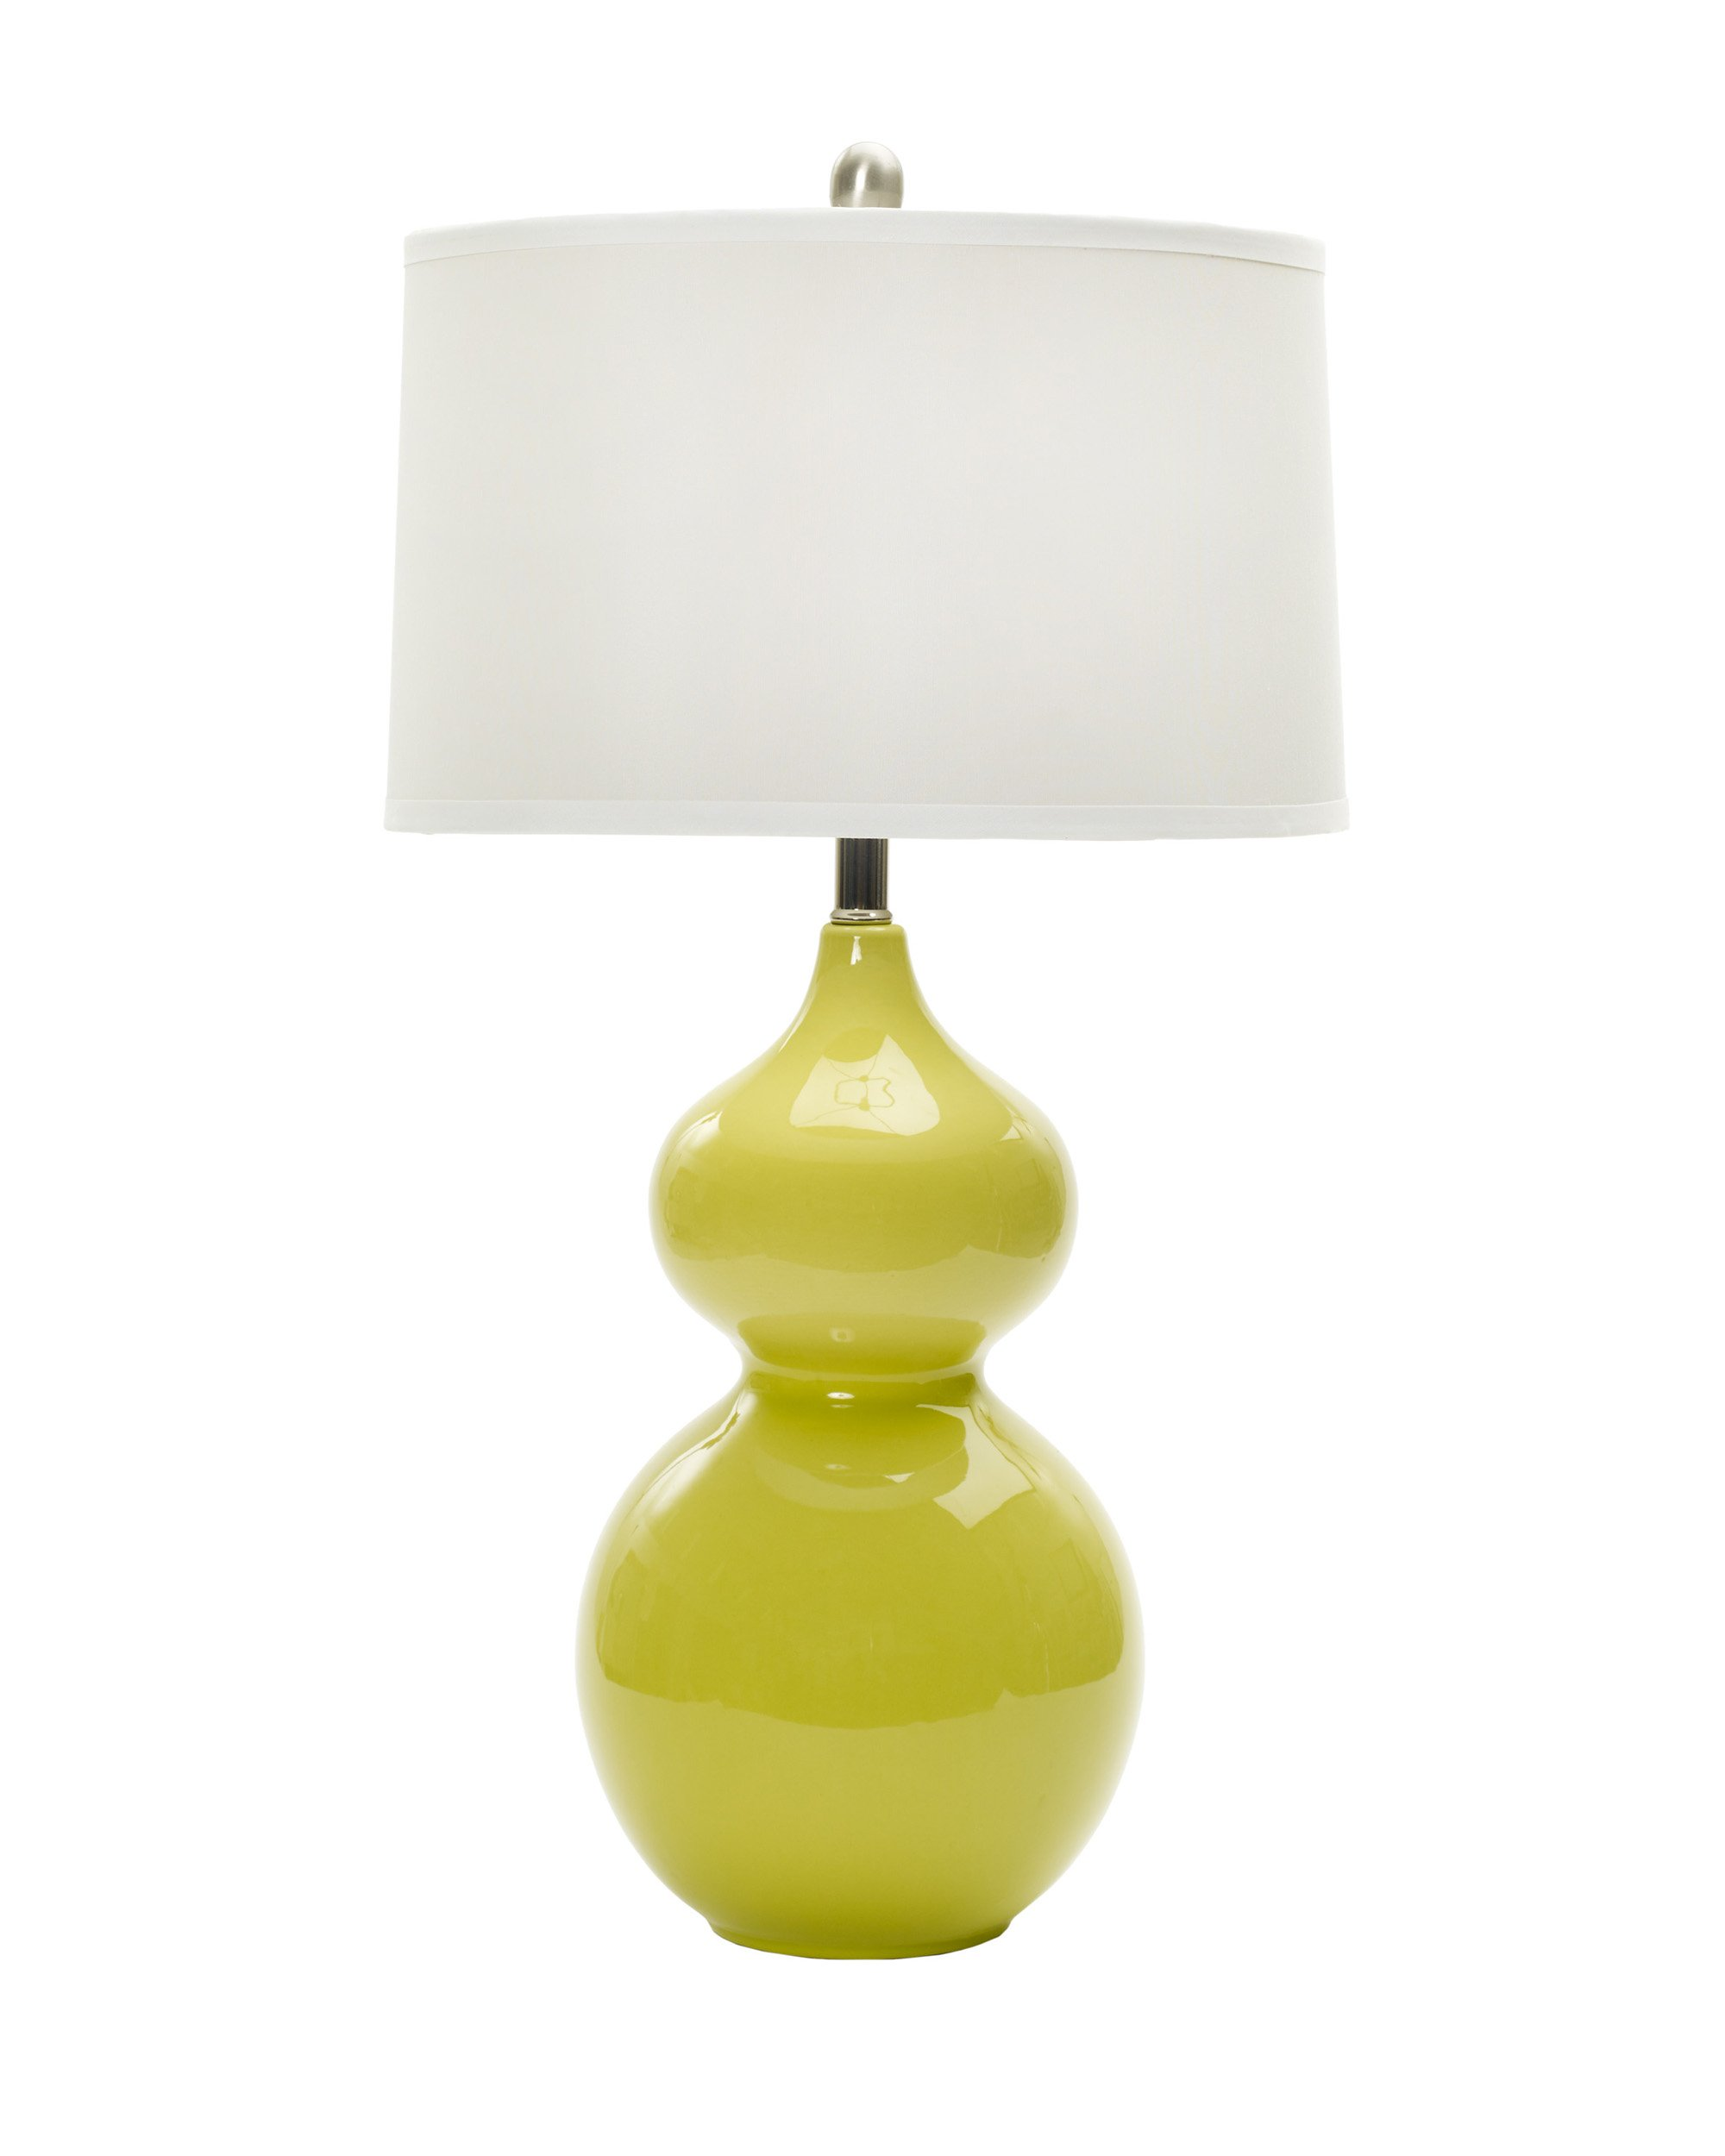 Fangio Lighting W-MR7790CHIC LIME 28'' Ceramic Table Lamp, Chic Lime & Brushed Steel Accents